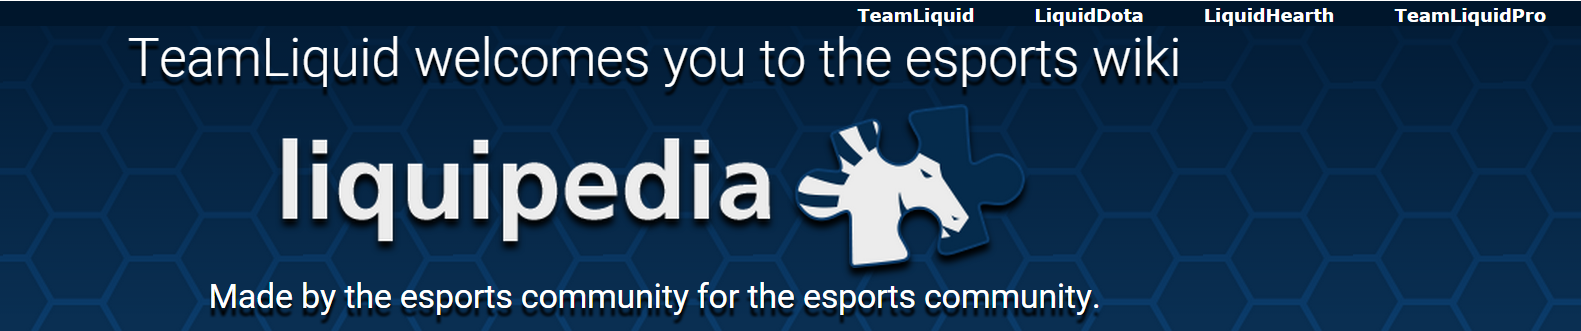 Liquipedia. TeamLiquid.